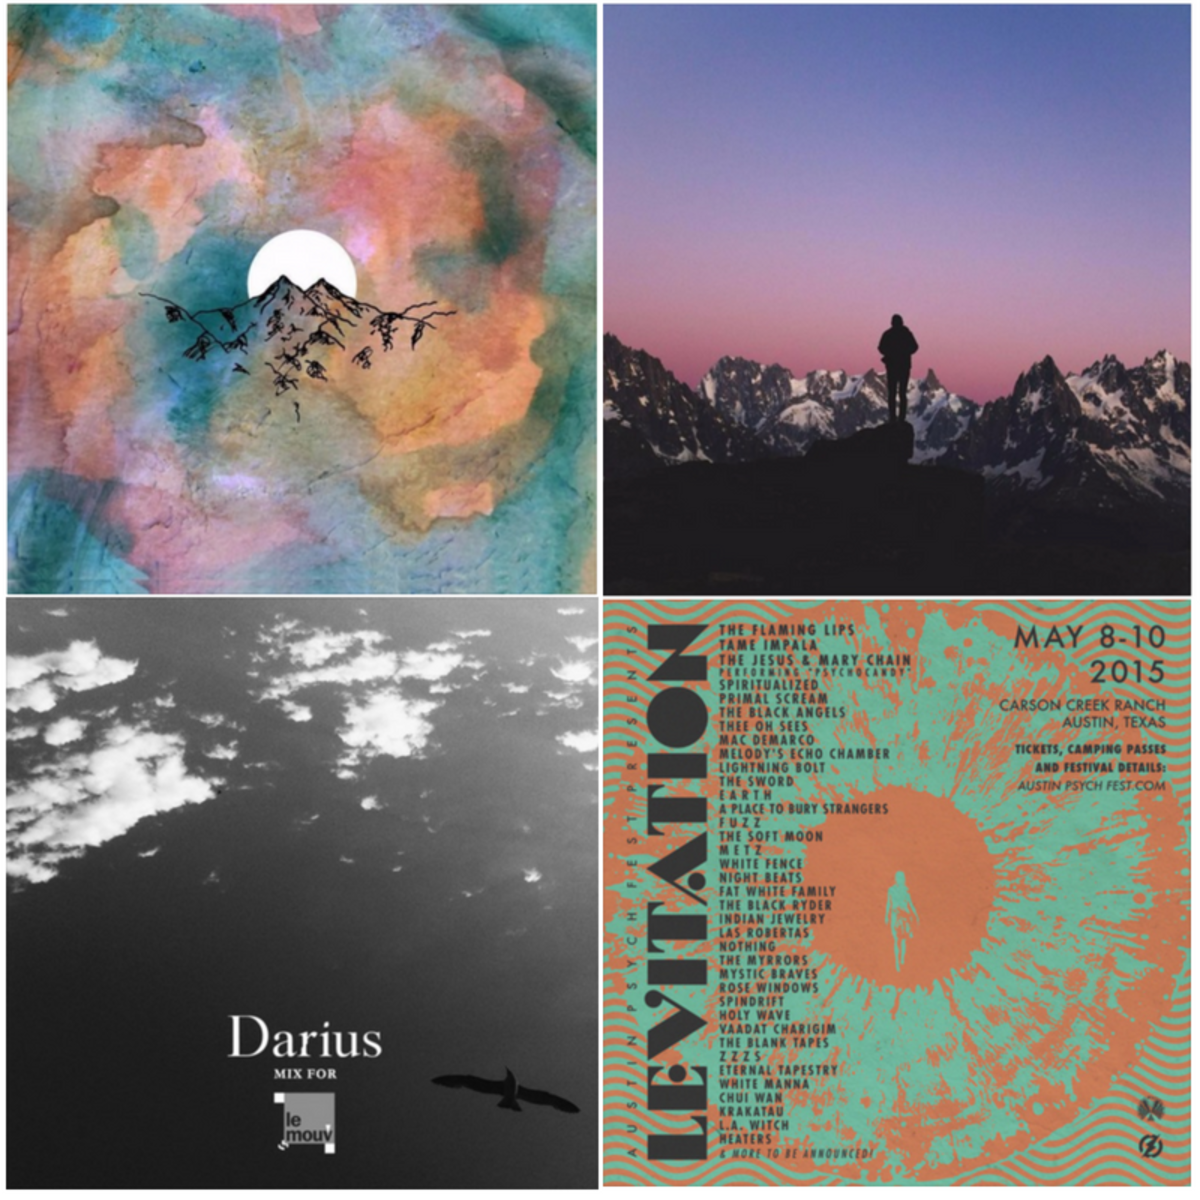 These are just some of many, many playlists out there that will satisfy your music needs for hours on end.